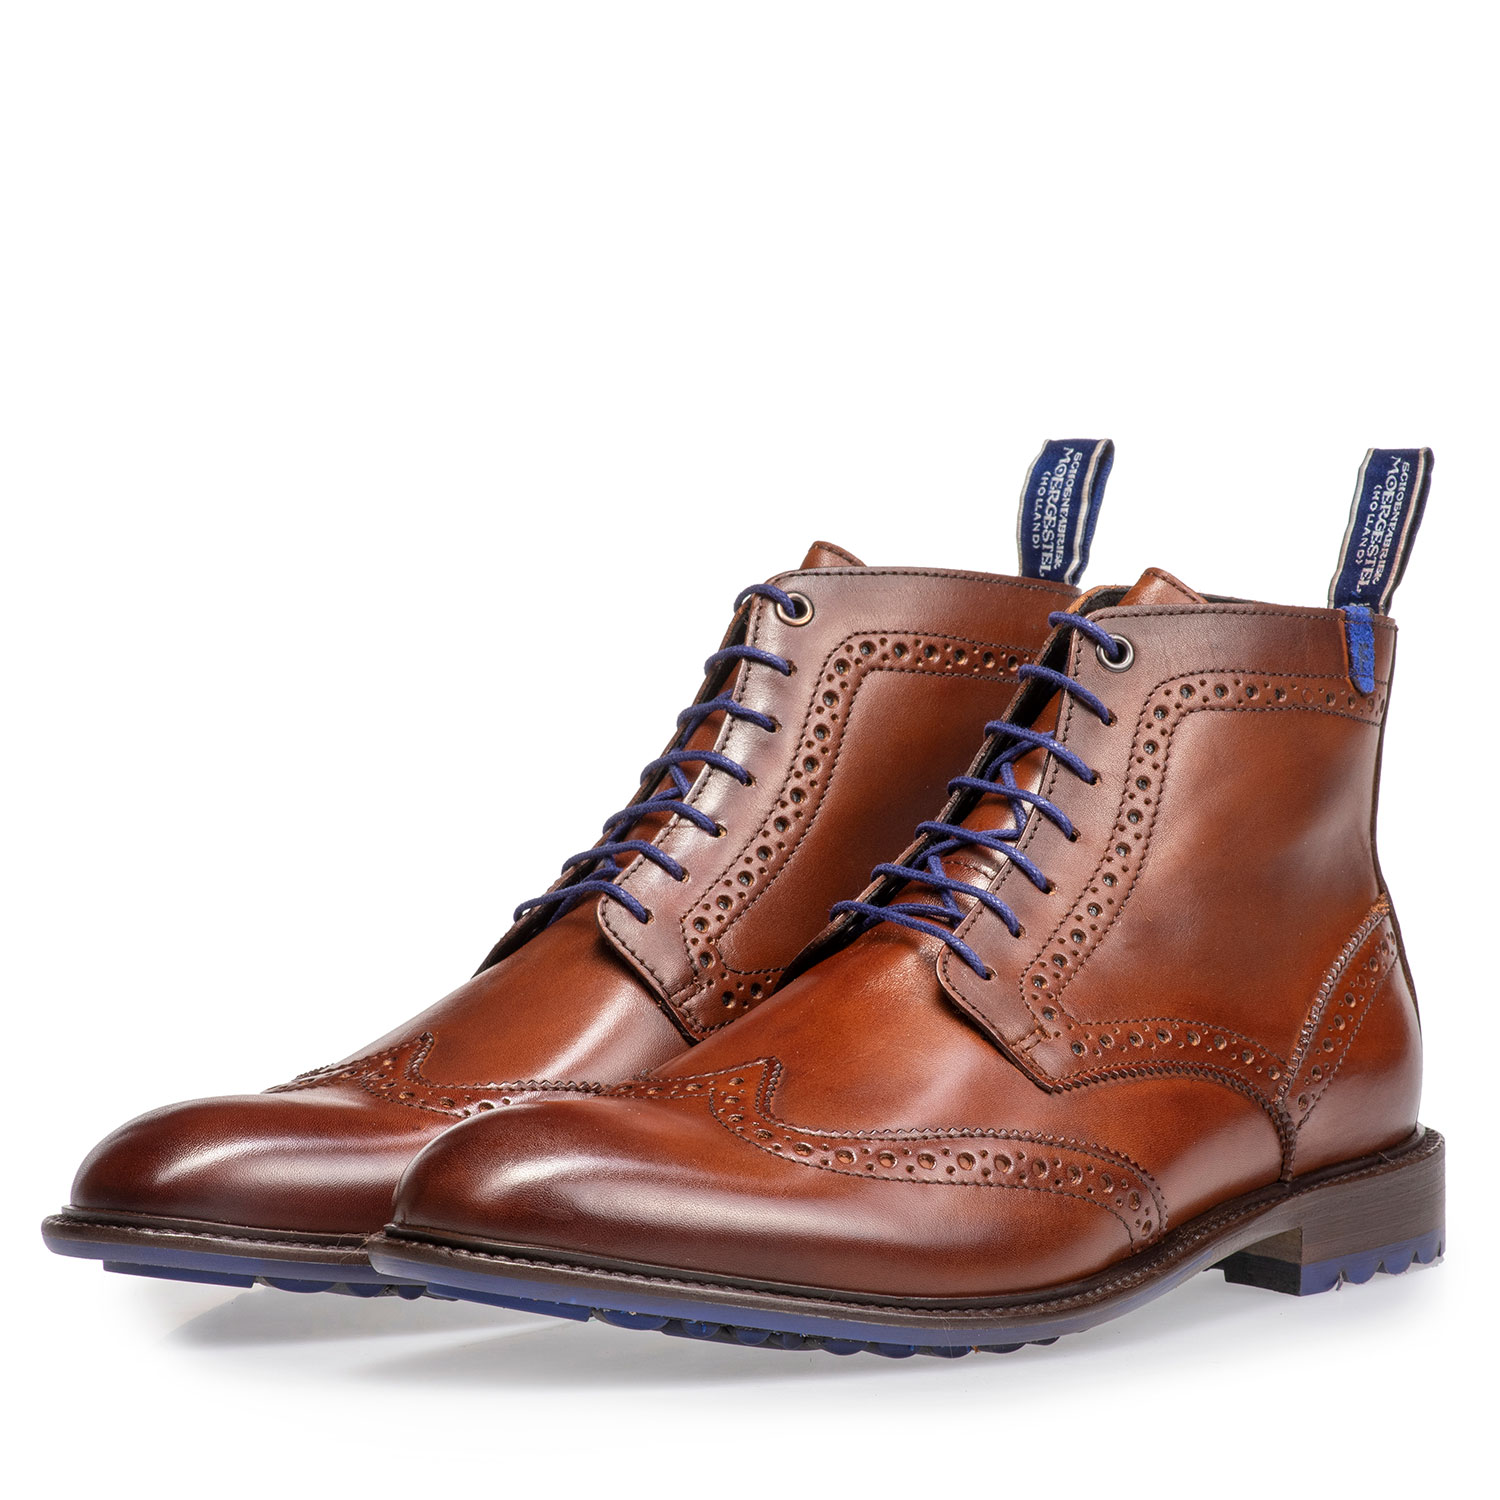 10506/10 - Dark cognac-coloured calf leather lace boot